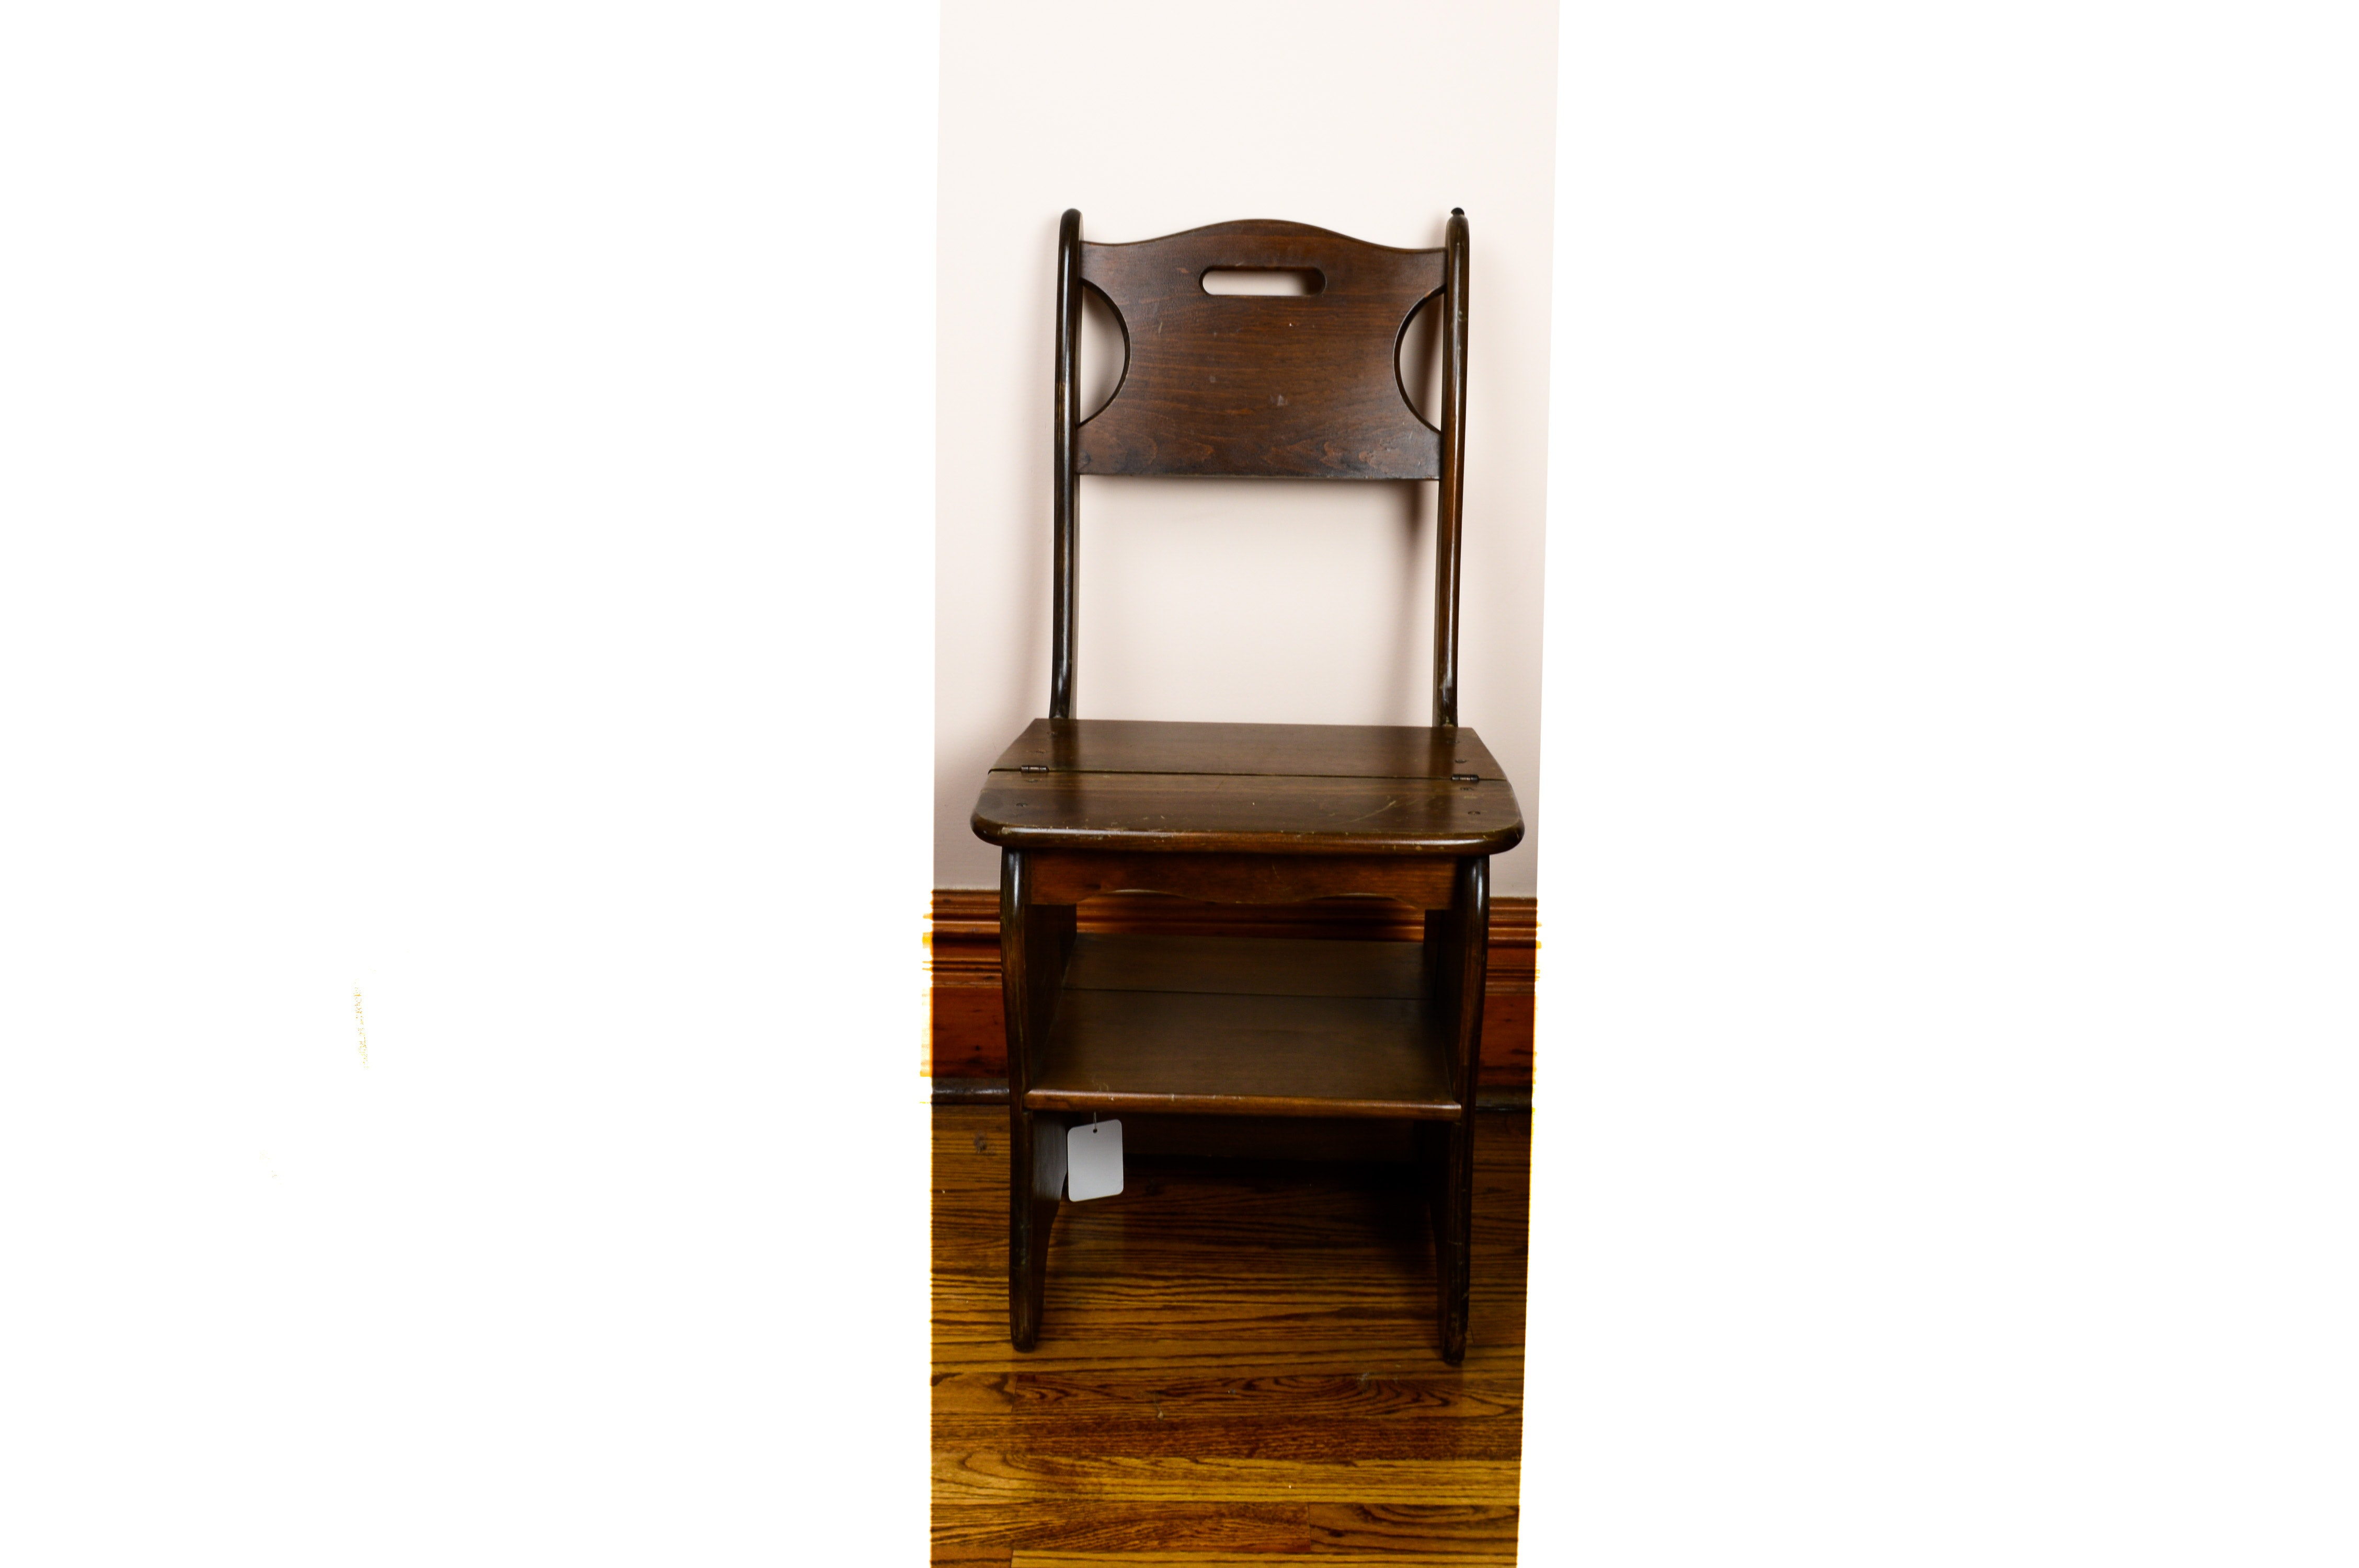 Franklin Style Metamorphic Library Chair Ladder Ebth Rh Ebth Com Chair  Ladder Combination Benjamin Franklin Library